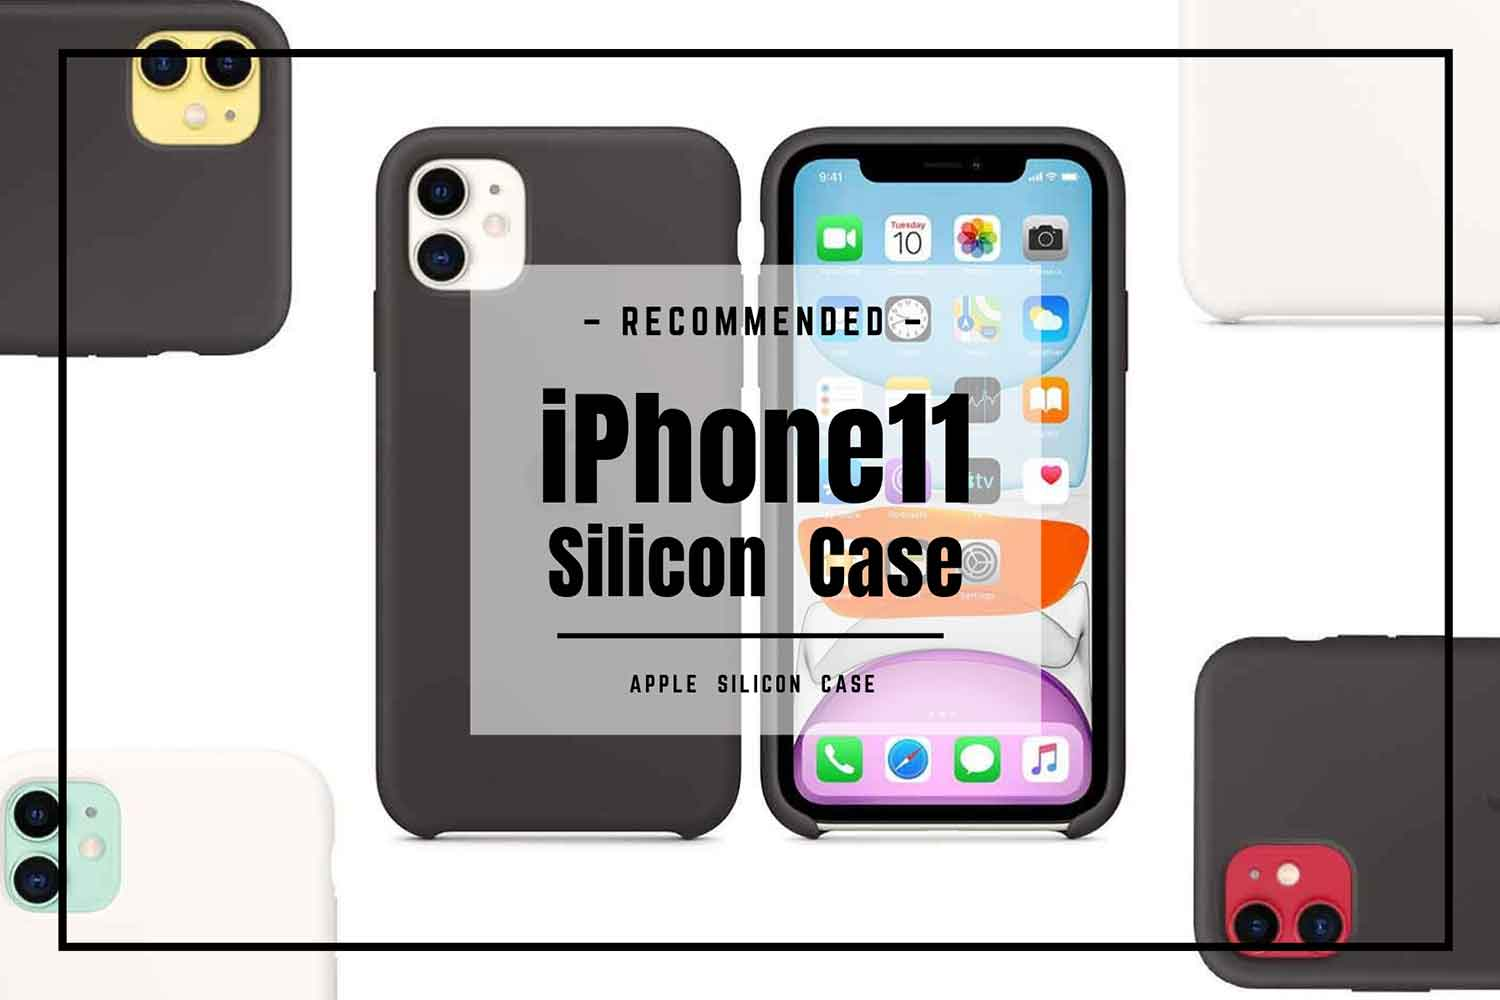 iPhone11-Silicon-Case-Apple